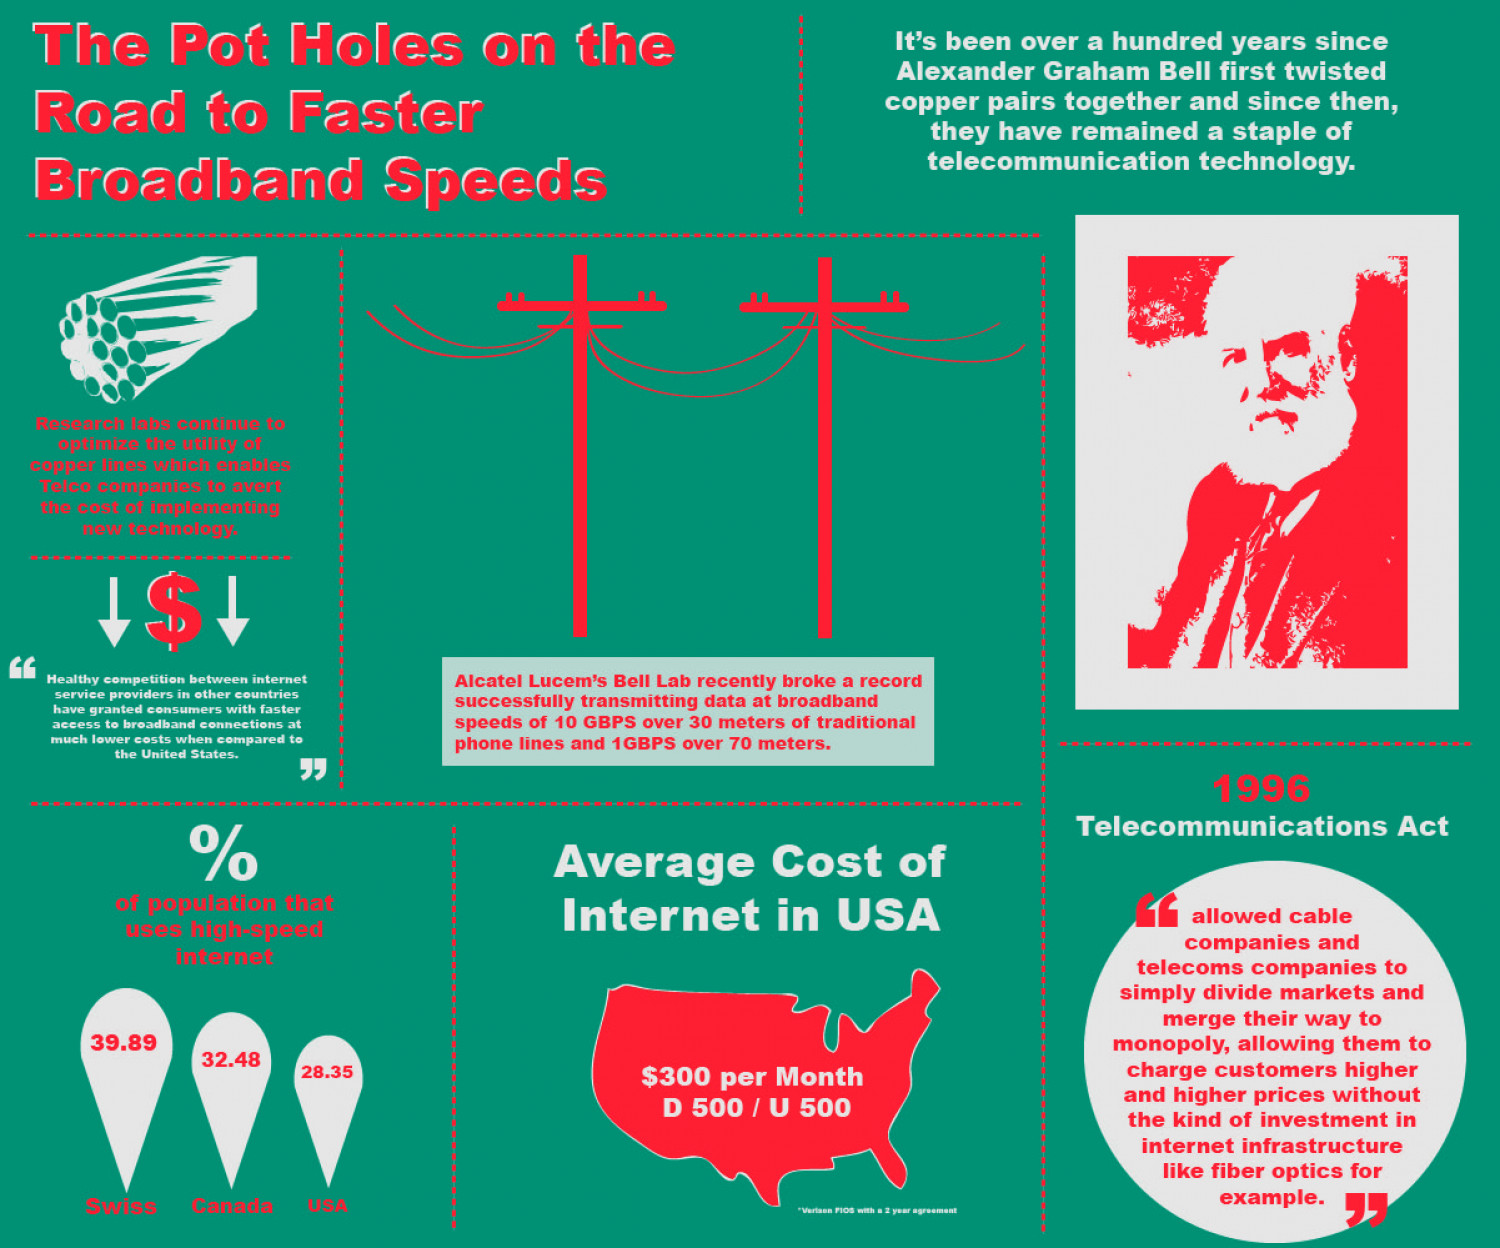 The Road to Faster Broadband Speeds Infographic